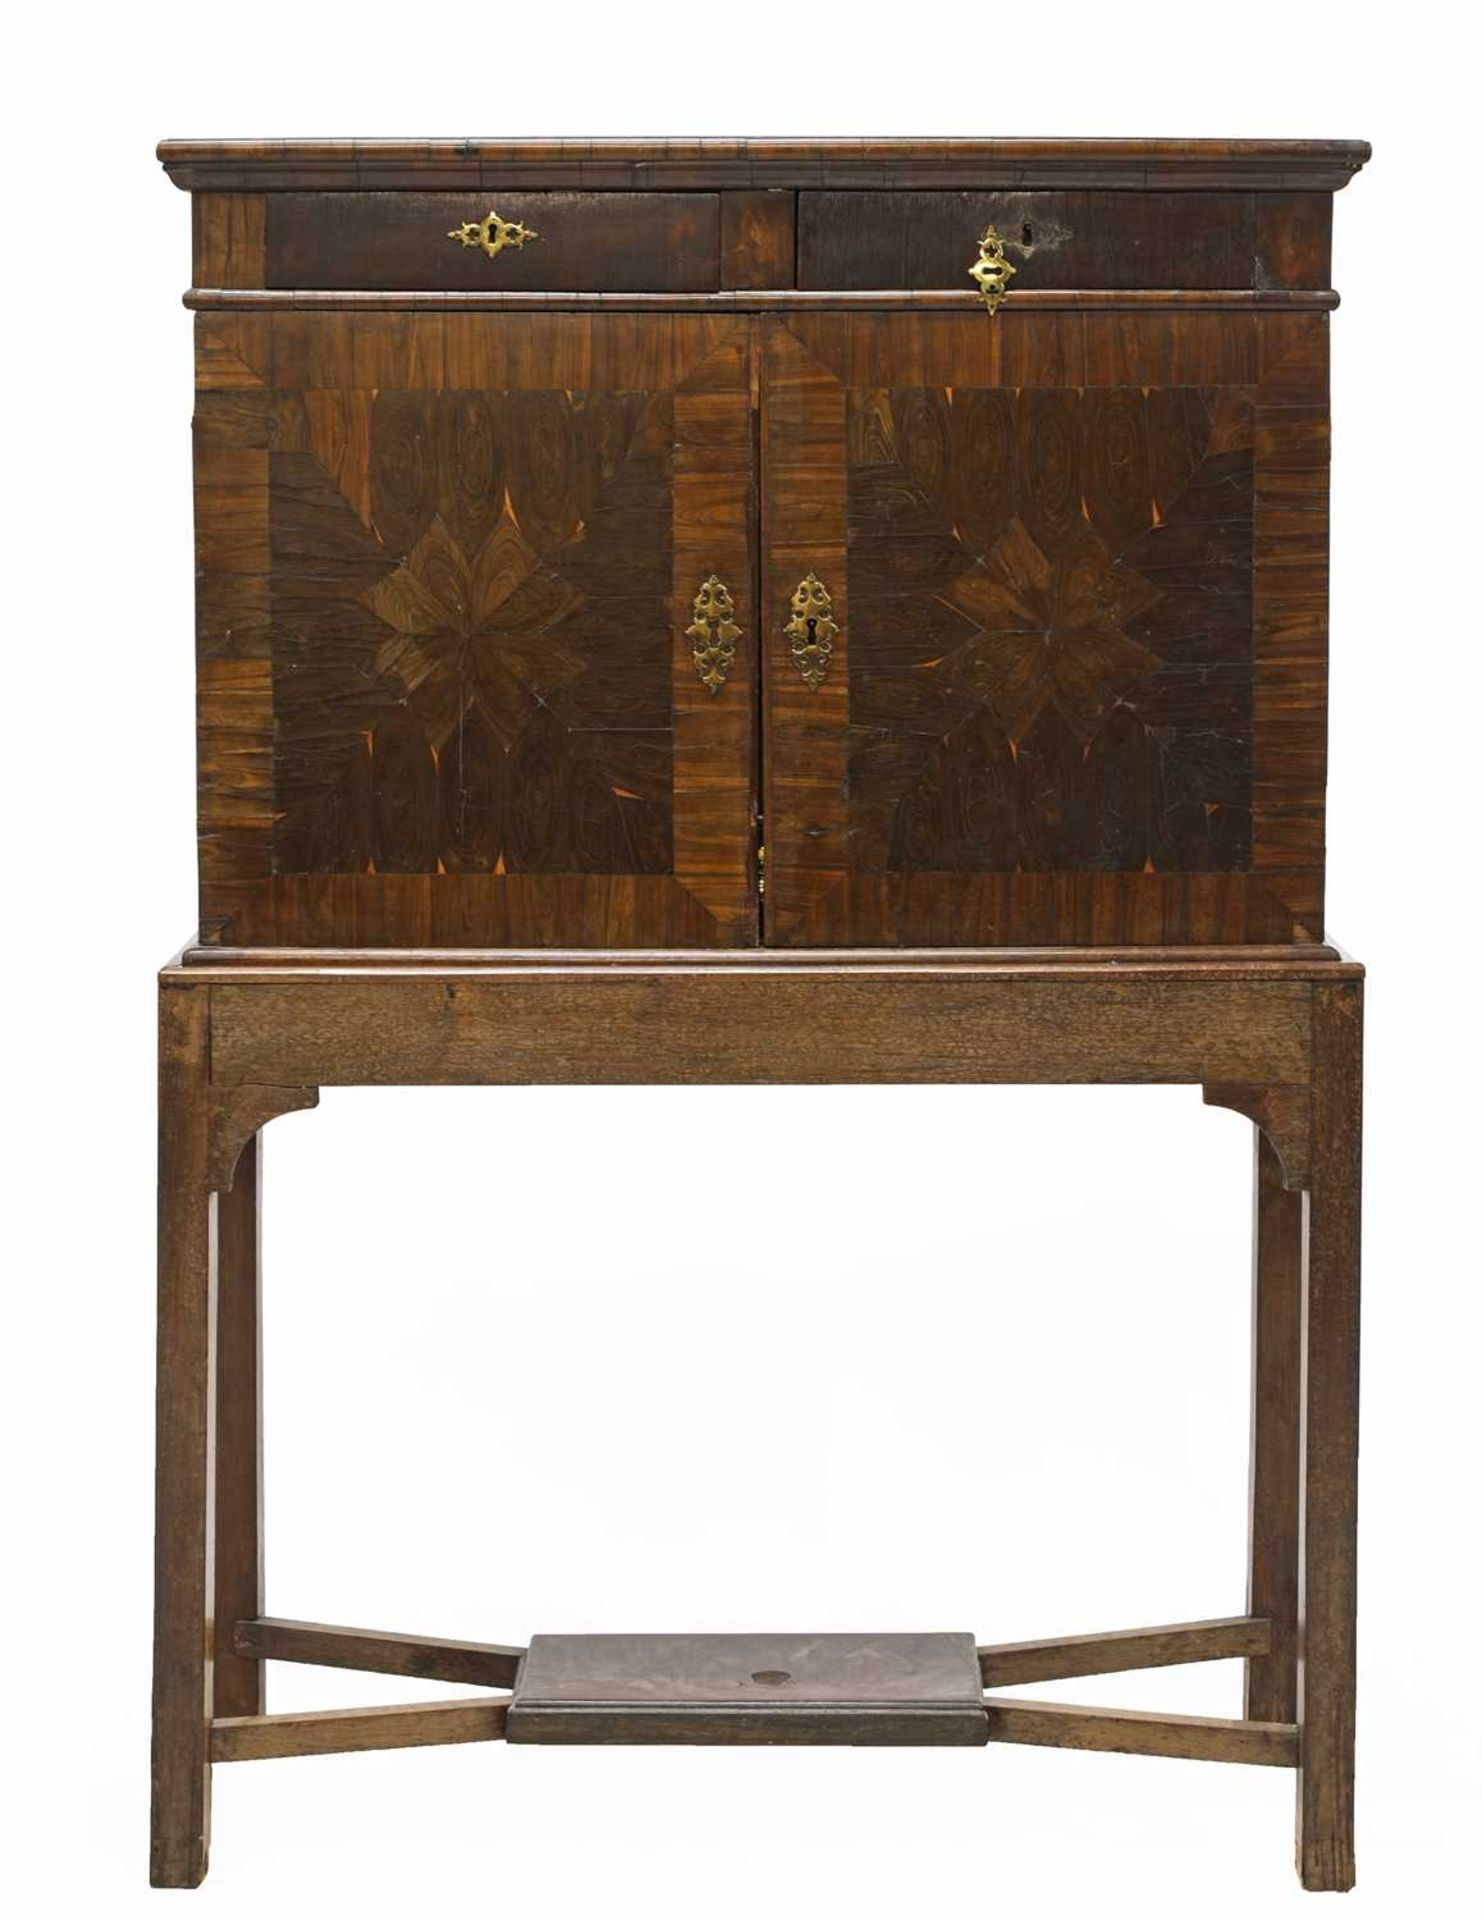 A Queen Anne cocus wood cabinet, - Image 2 of 42